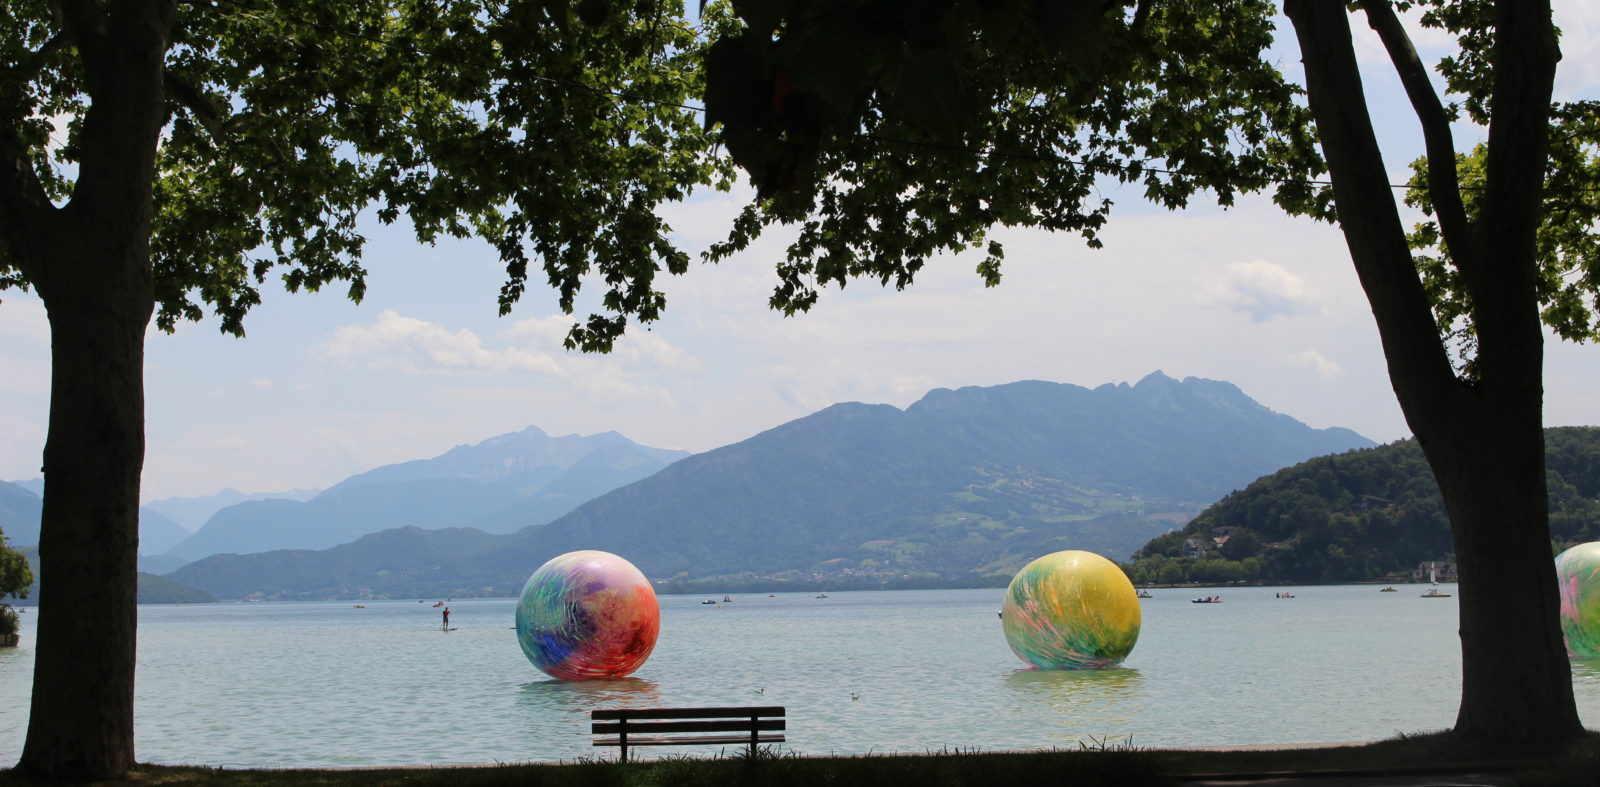 Festival Annecy Paysages 2020 Out/Elodie